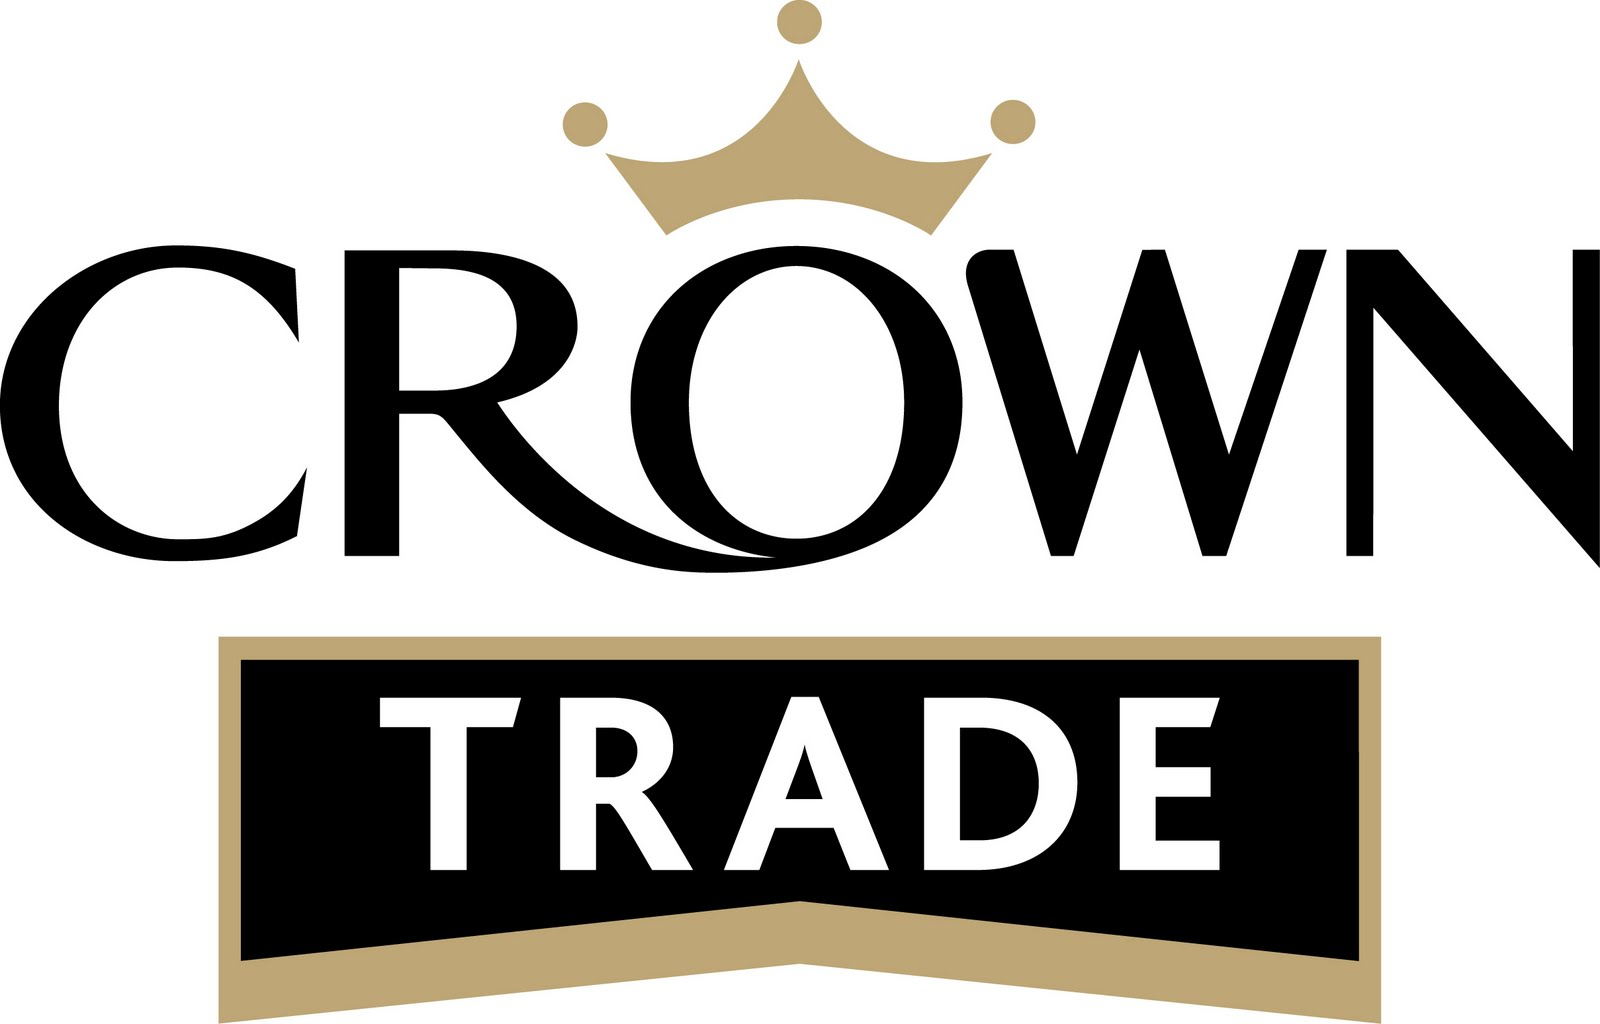 Crown logo Wallpaper